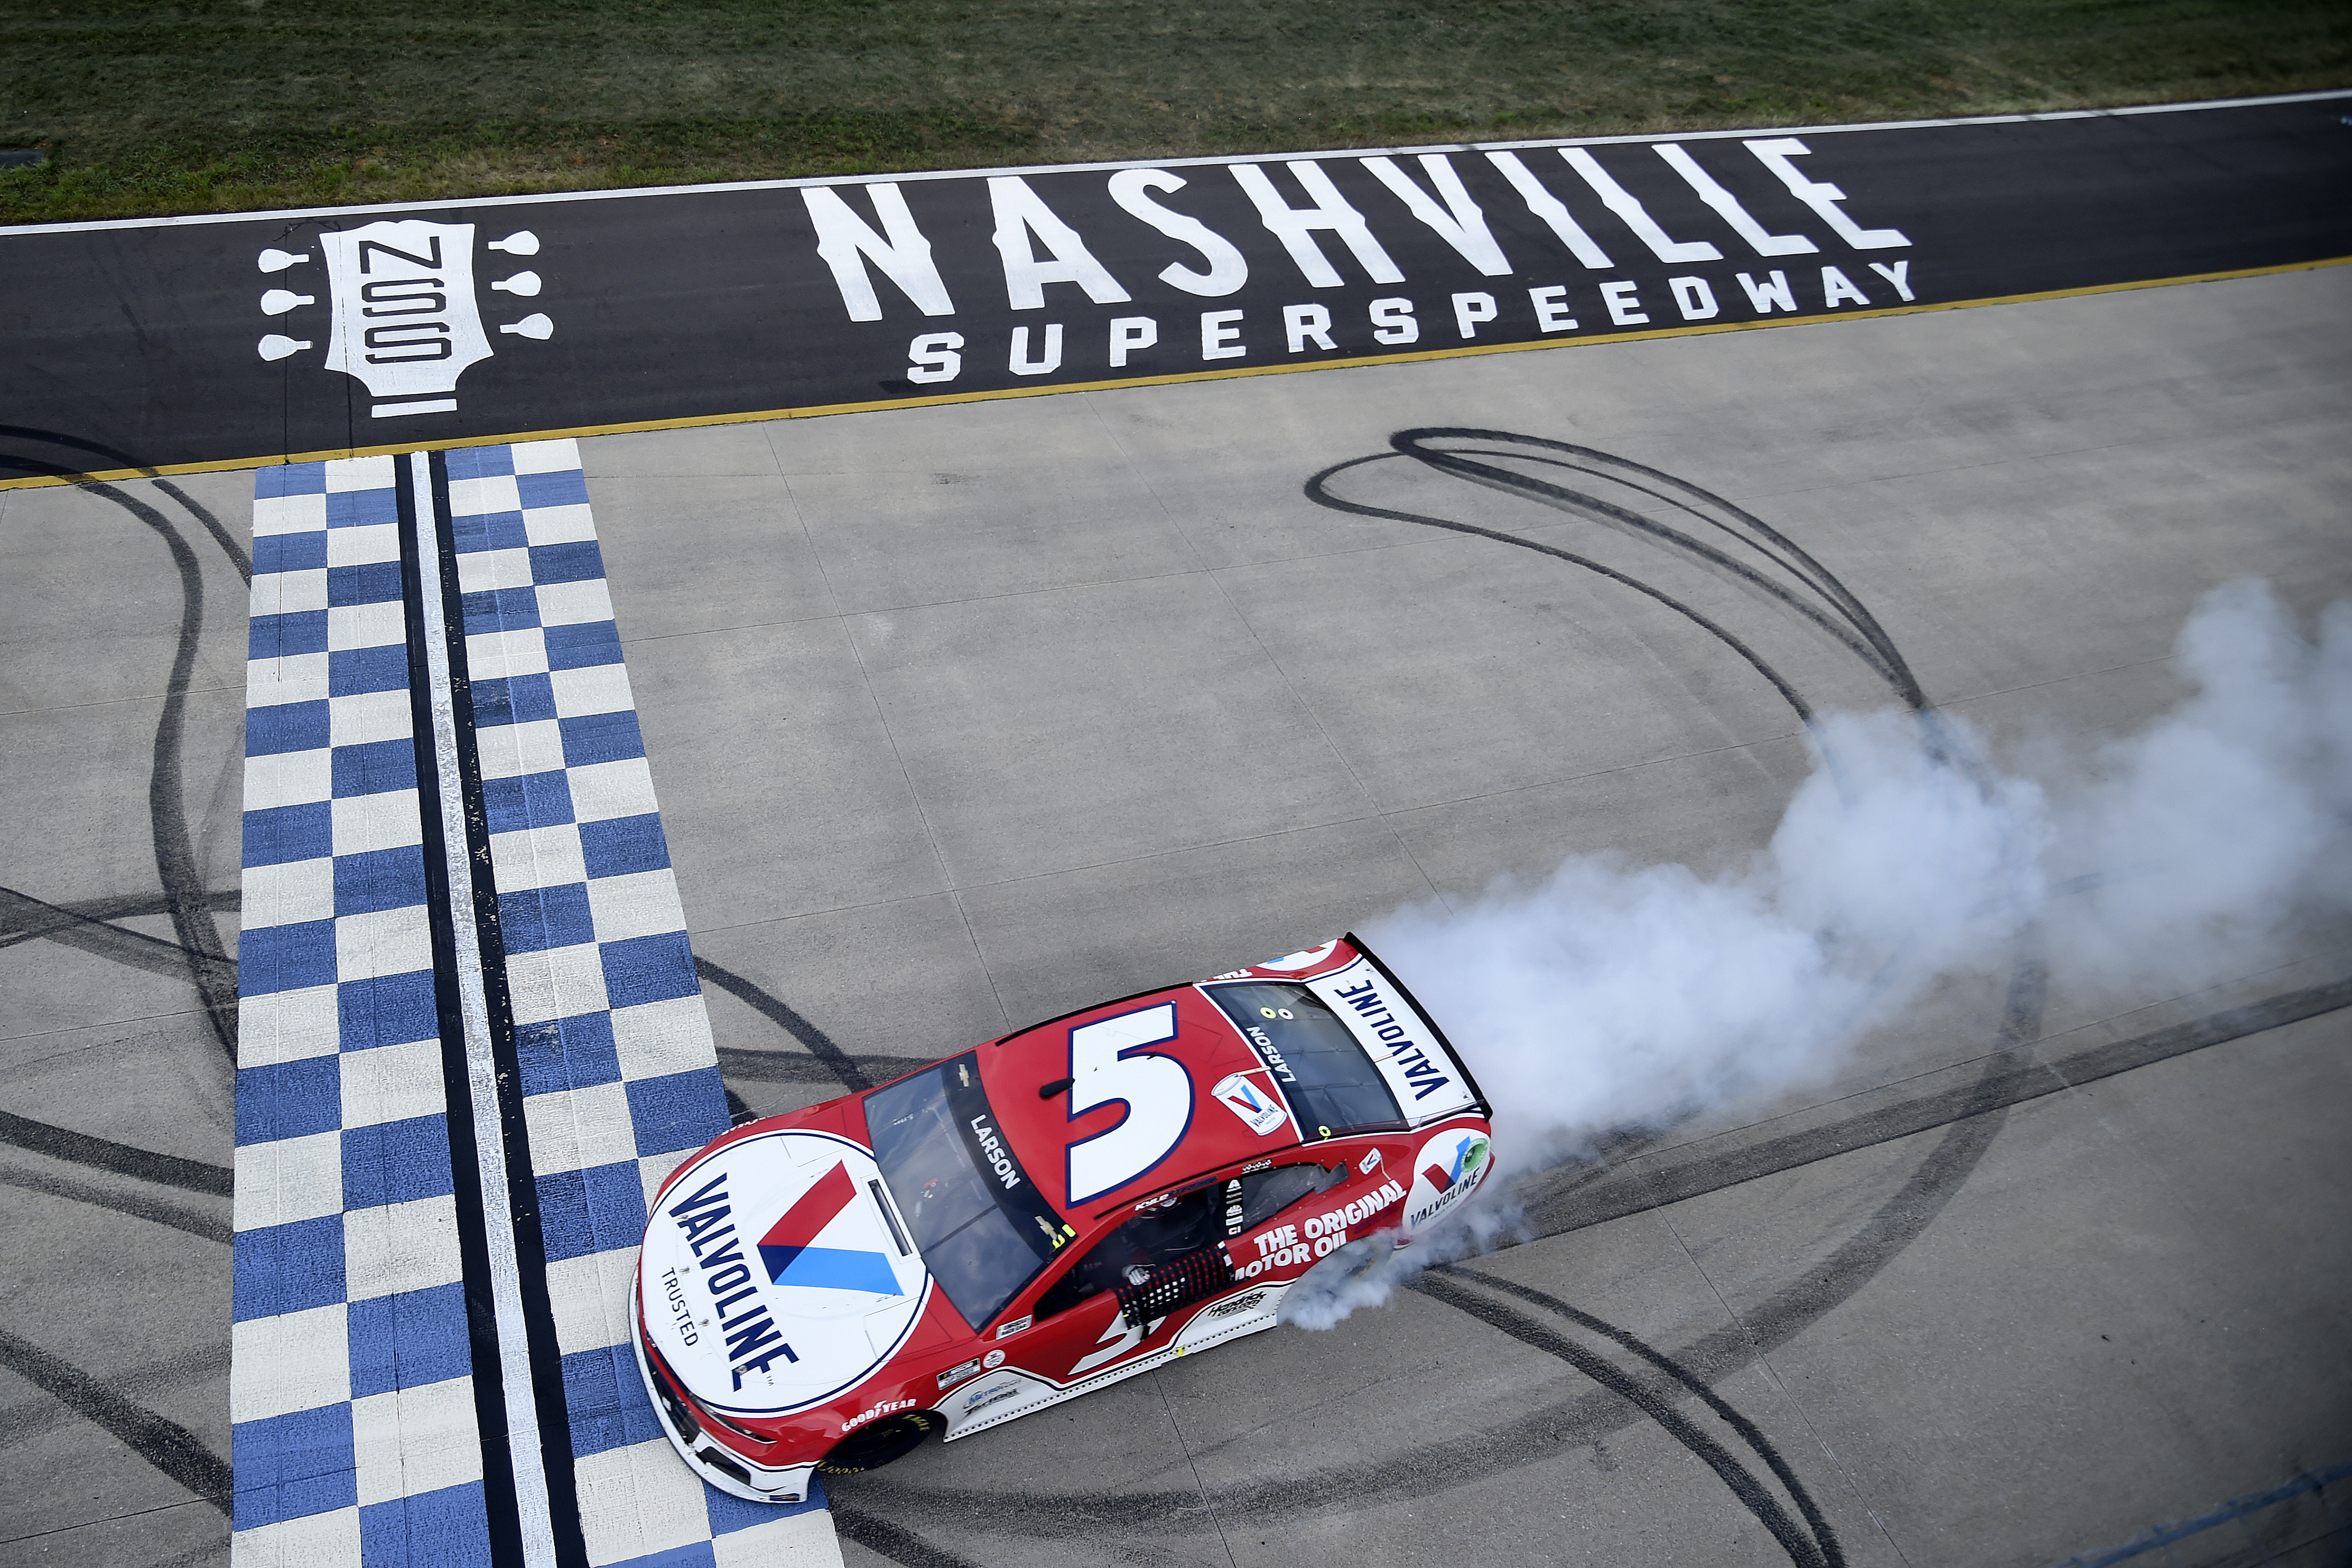 LEBANON, TENNESSEE - JUNE 20: Kyle Larson, driver of the #5 Valvoline Chevrolet, celebrates with a burnout after winning the NASCAR Cup Series Ally 400 at Nashville Superspeedway on June 20, 2021 in Lebanon, Tennessee. (Photo by Logan Riely/Getty Images) | Getty Images